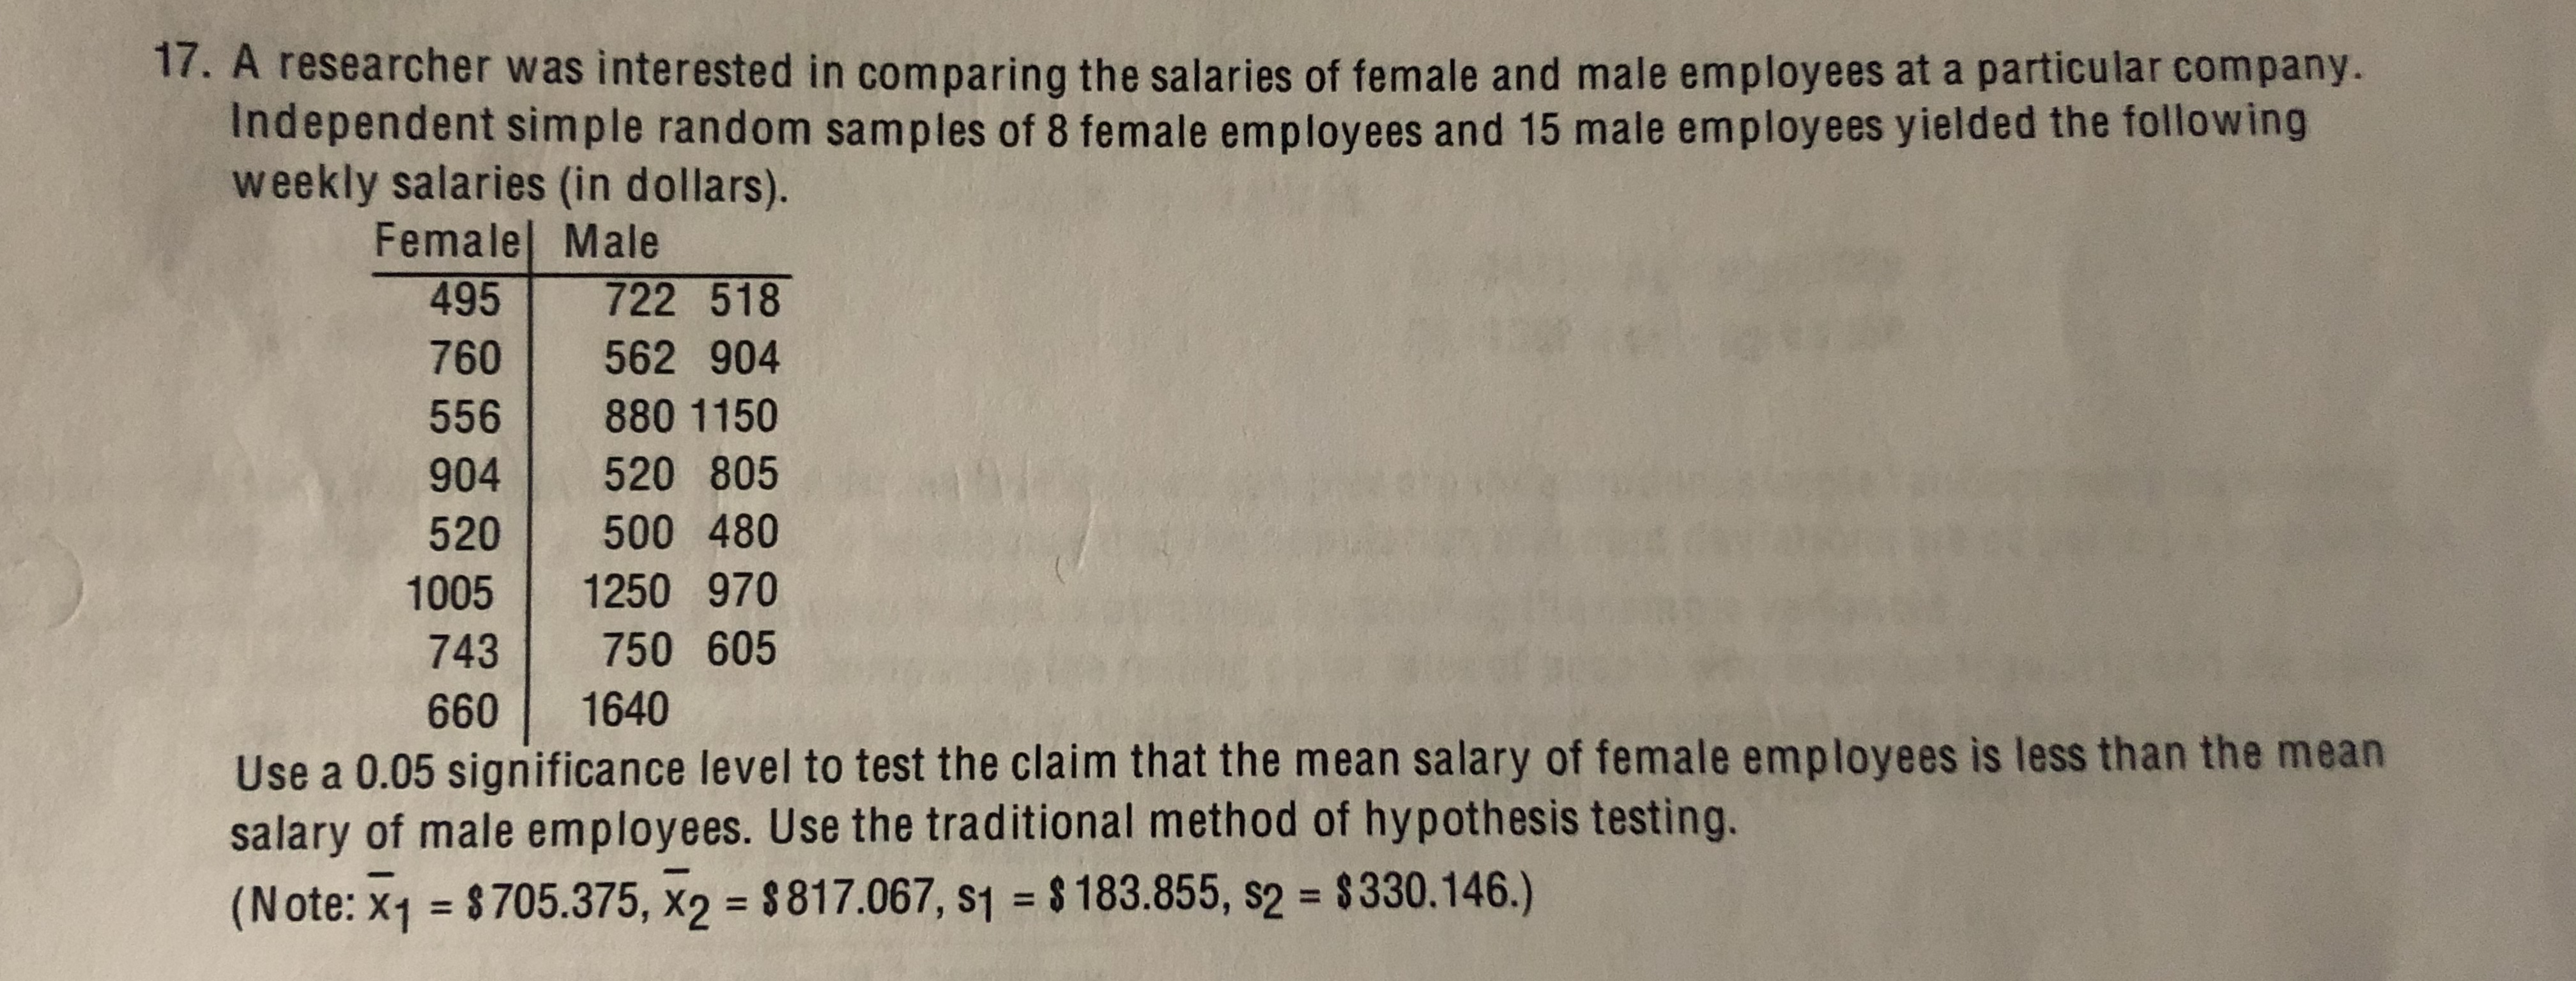 17. A researcher was interested in comparing the salaries of female and male employees at a particular company. Independent simple random samples of 8 female employees and 15 male employees yielded the following weekly salaries (in dollars). Femalel Male 722 518 495 760 562 904 880 1150 556 520 805 904 500 480 520 1250 970 1005 750 605 743 1640 660 Use a 0.05 significance level to test the claim that the mean salary of female employees is less than the mean salary of male employees. Use the traditional method of hypothesis testing. (Note: x1 = 8705.375, x2 = $817.067, s1 = $ 183.855, s2 = $330.146.) %3D %3D %3D %3D